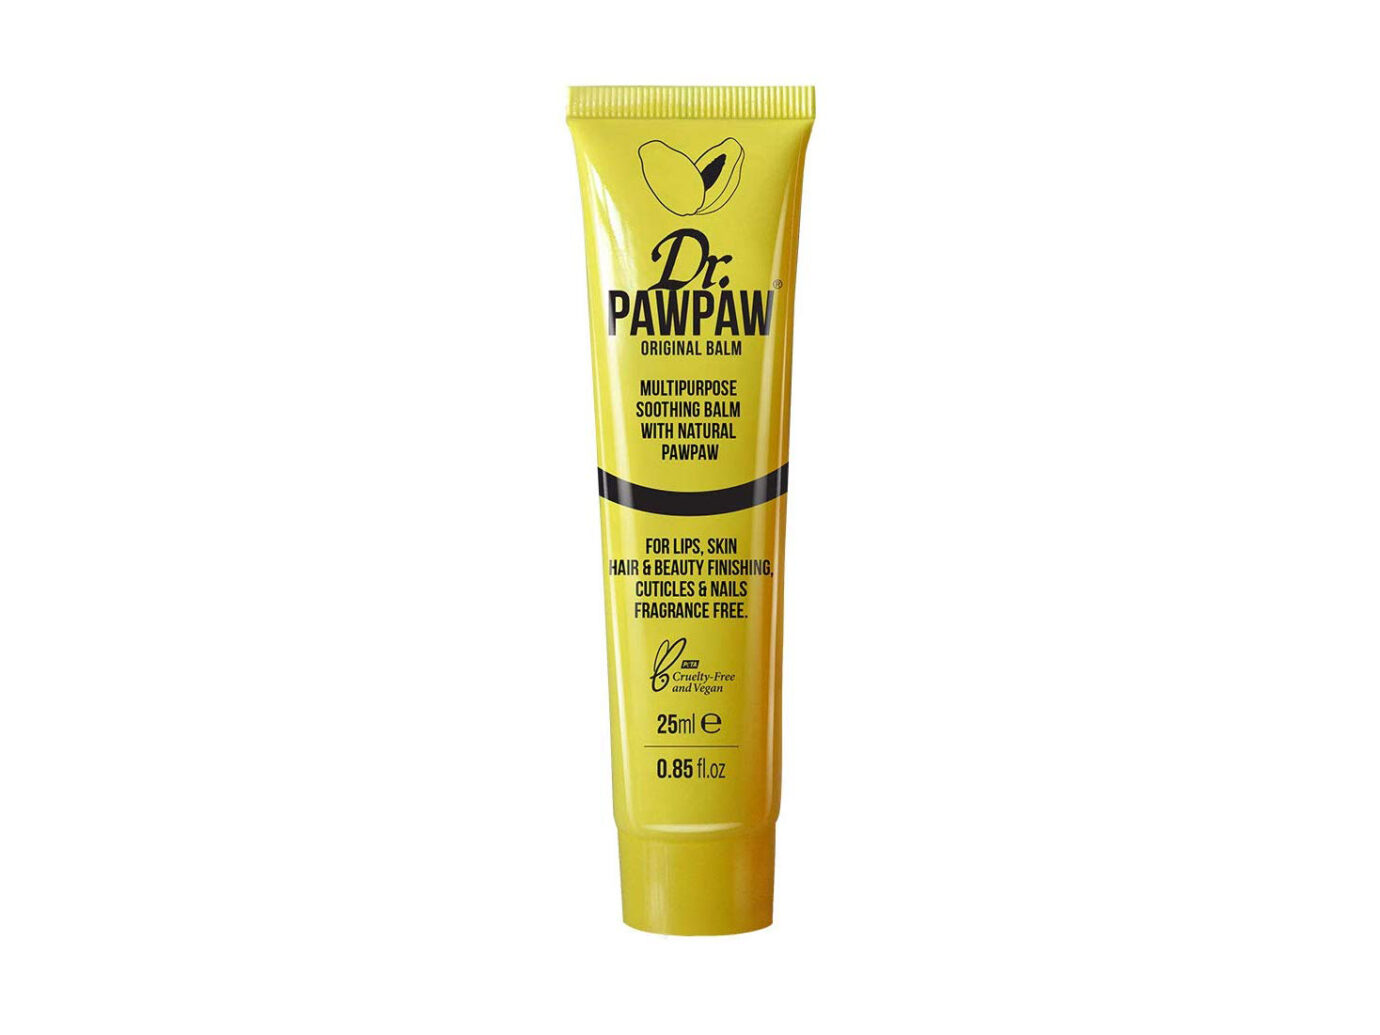 Dr. Pawpaw Multi-Purpose Balm